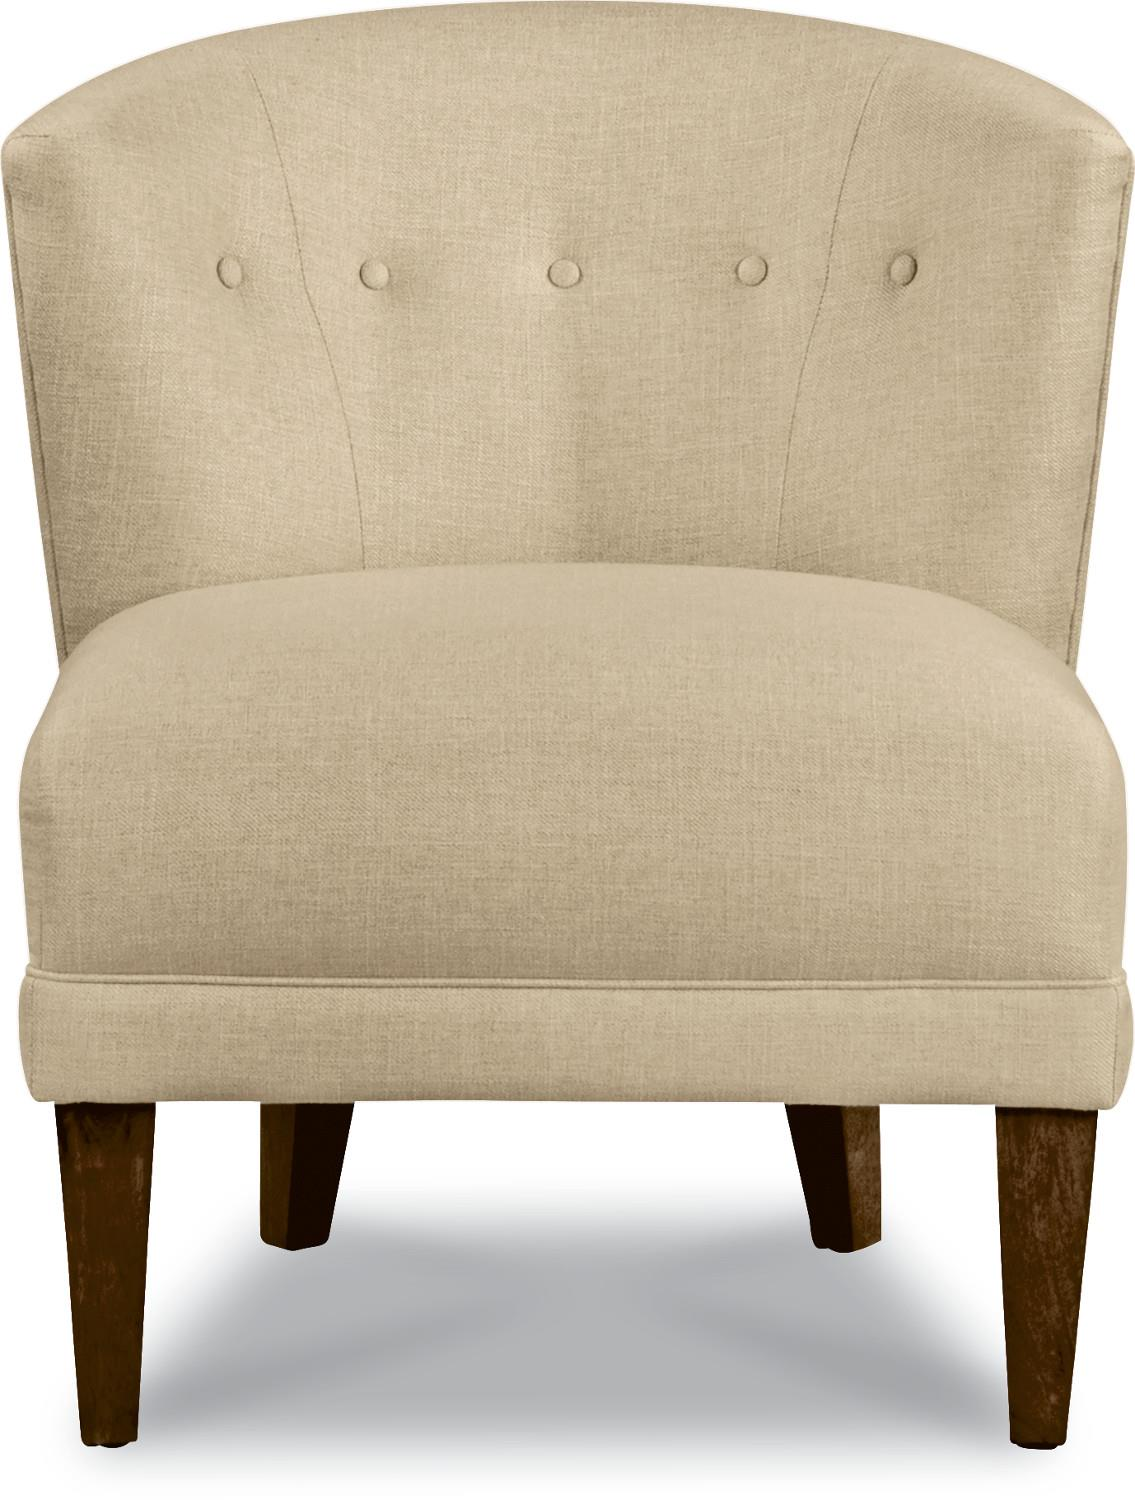 Chairs Nolita Accent Chair by La-Z-Boy at Jordan's Home Furnishings